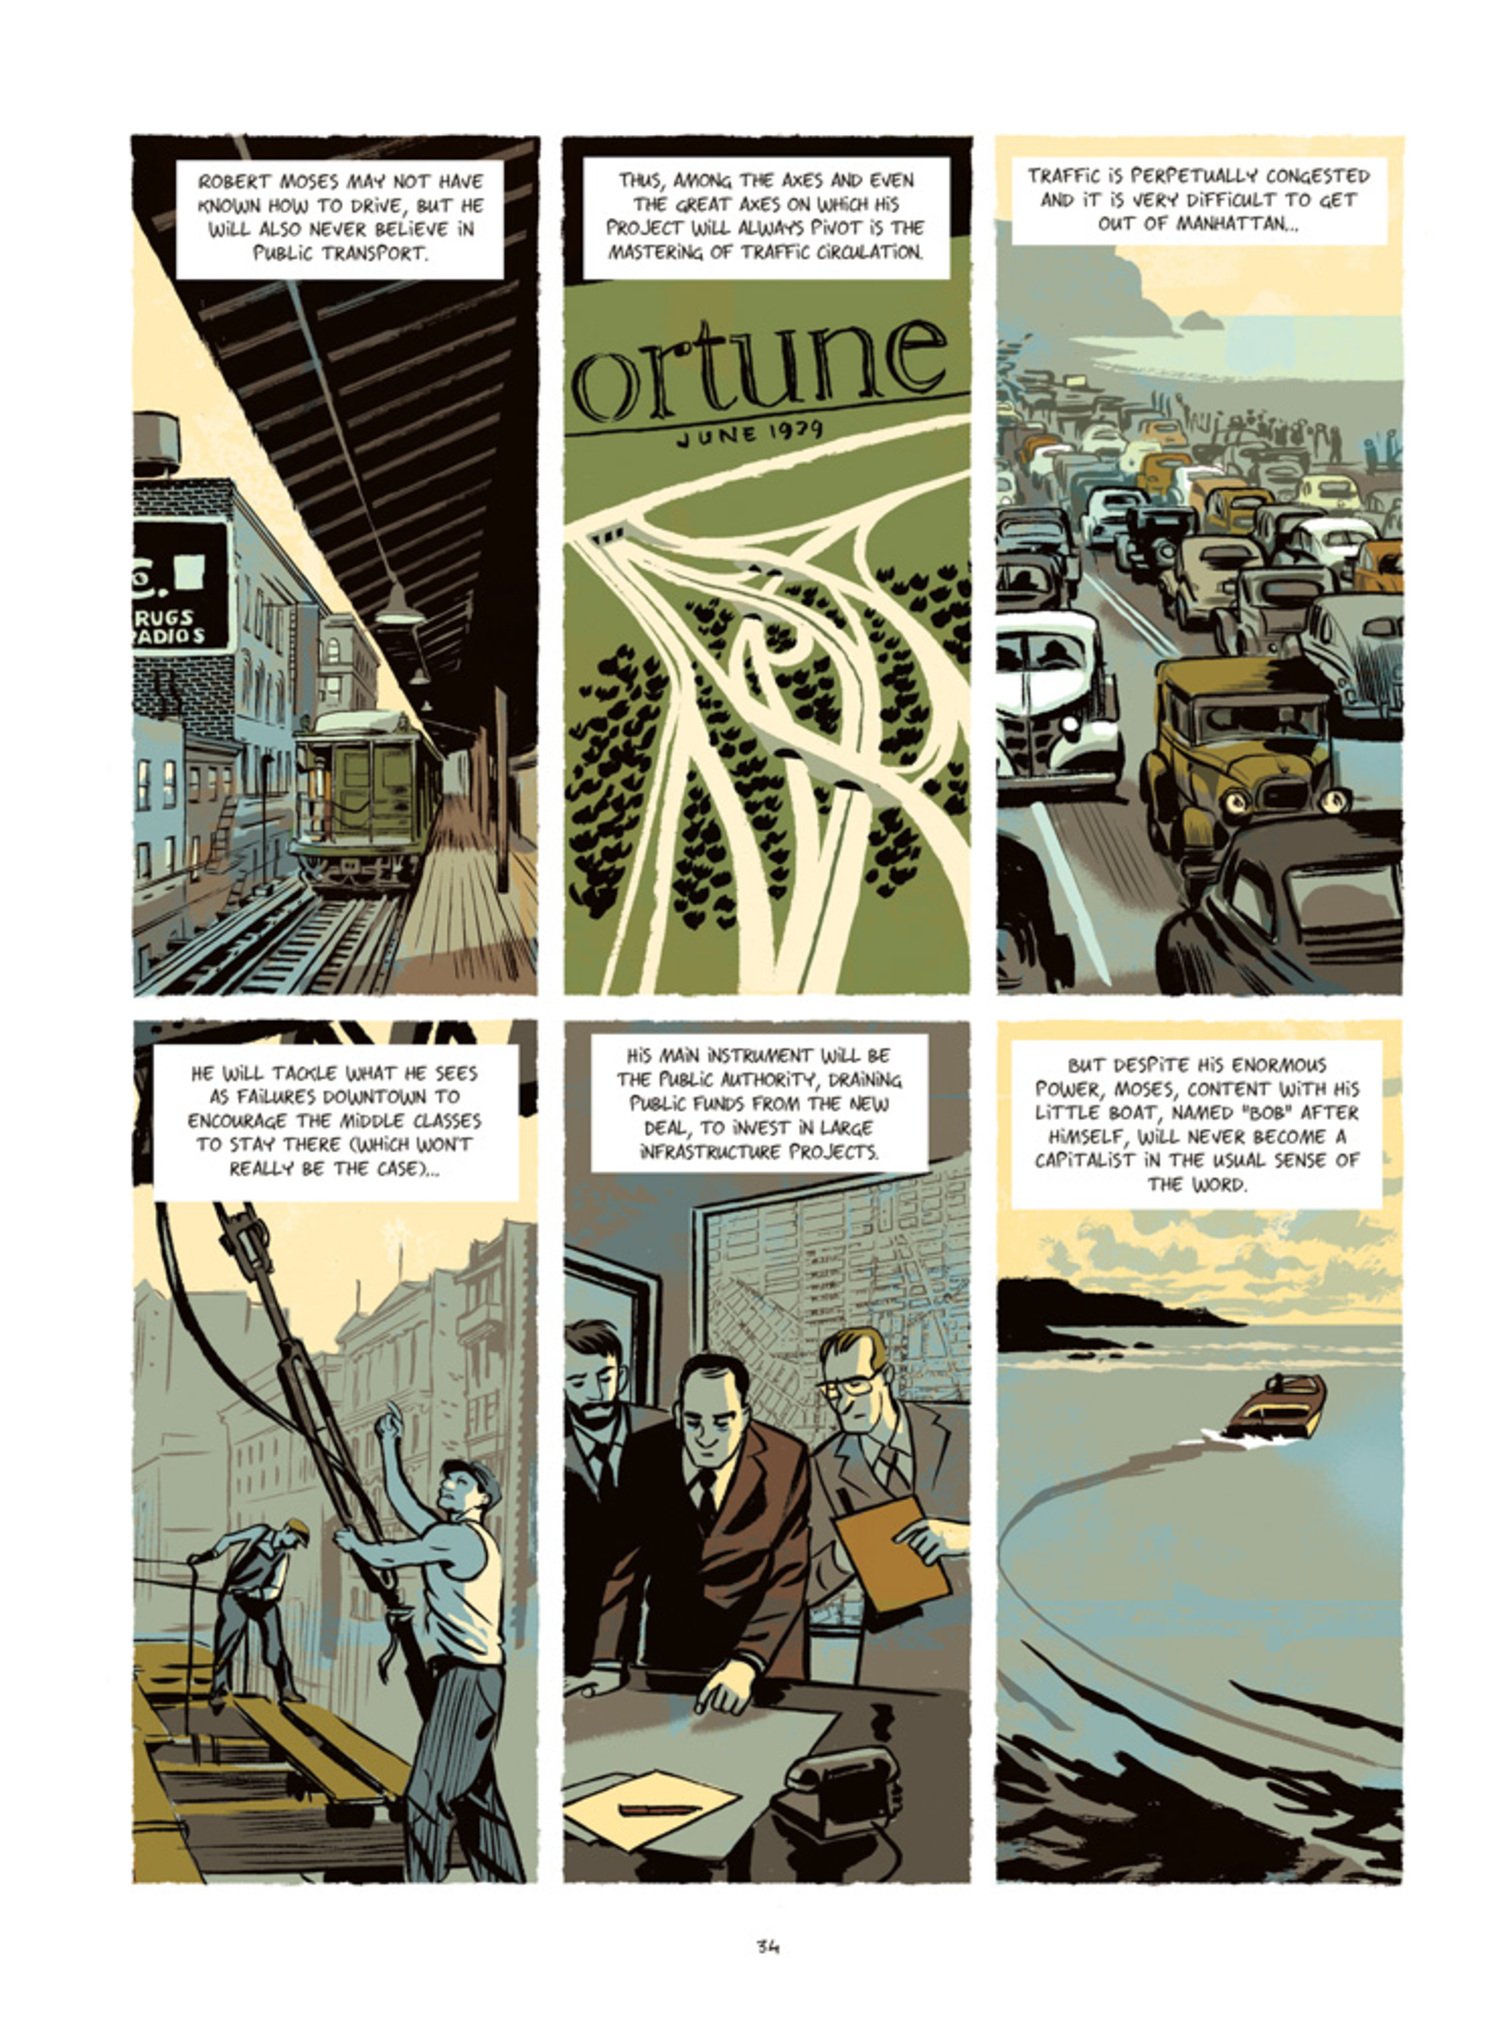 The goal of the book, according to illustrator Olivier Balez, was to show the general public a man who shaped the city over a span of three decades, while remaining unknown to most people.